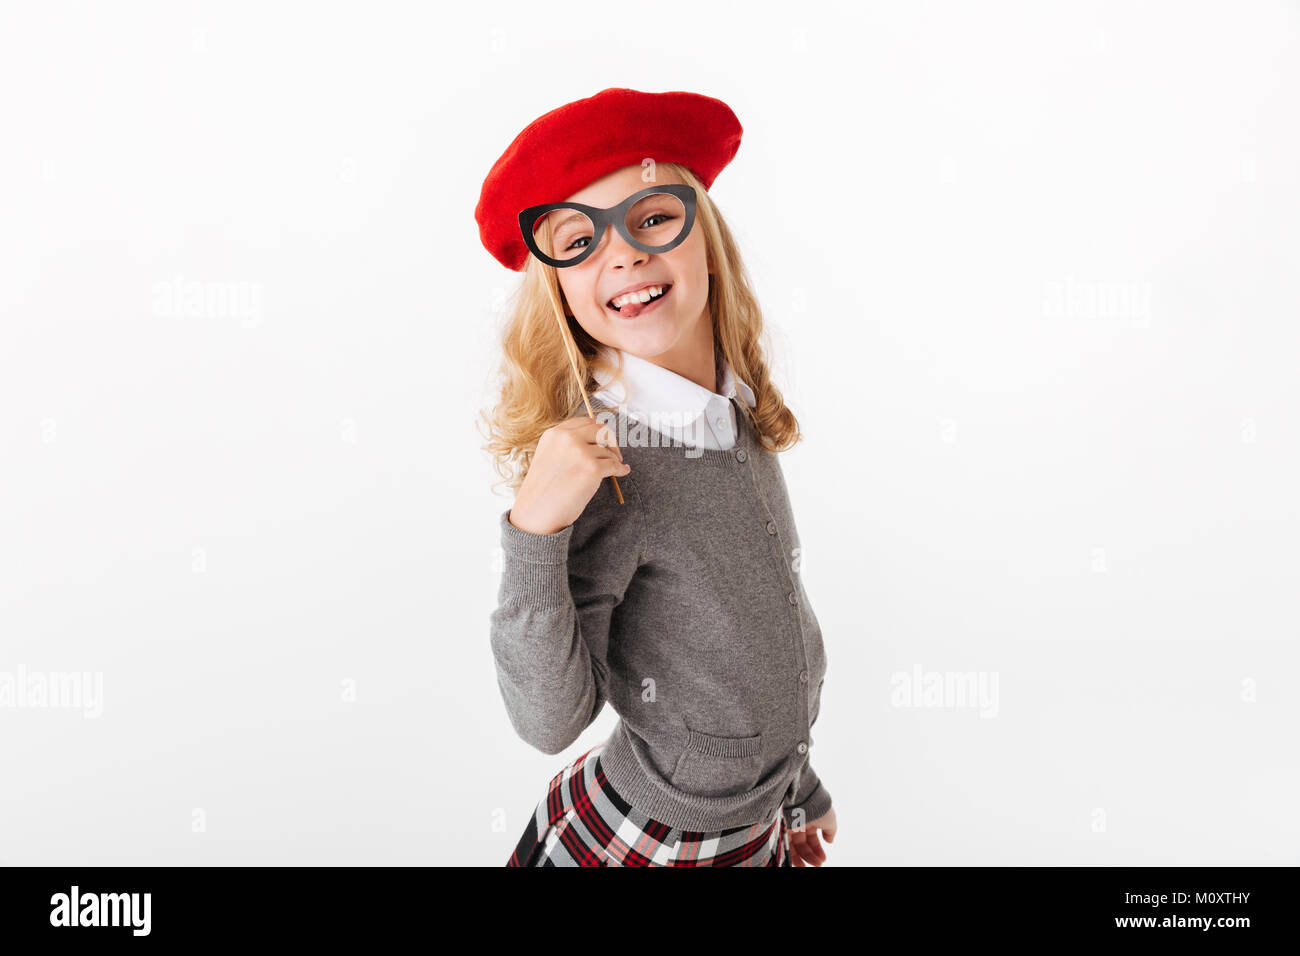 Portrait of a smiling little schoolgirl dressed in uniform grimacing and looking at camera isolated over white background - Stock Image